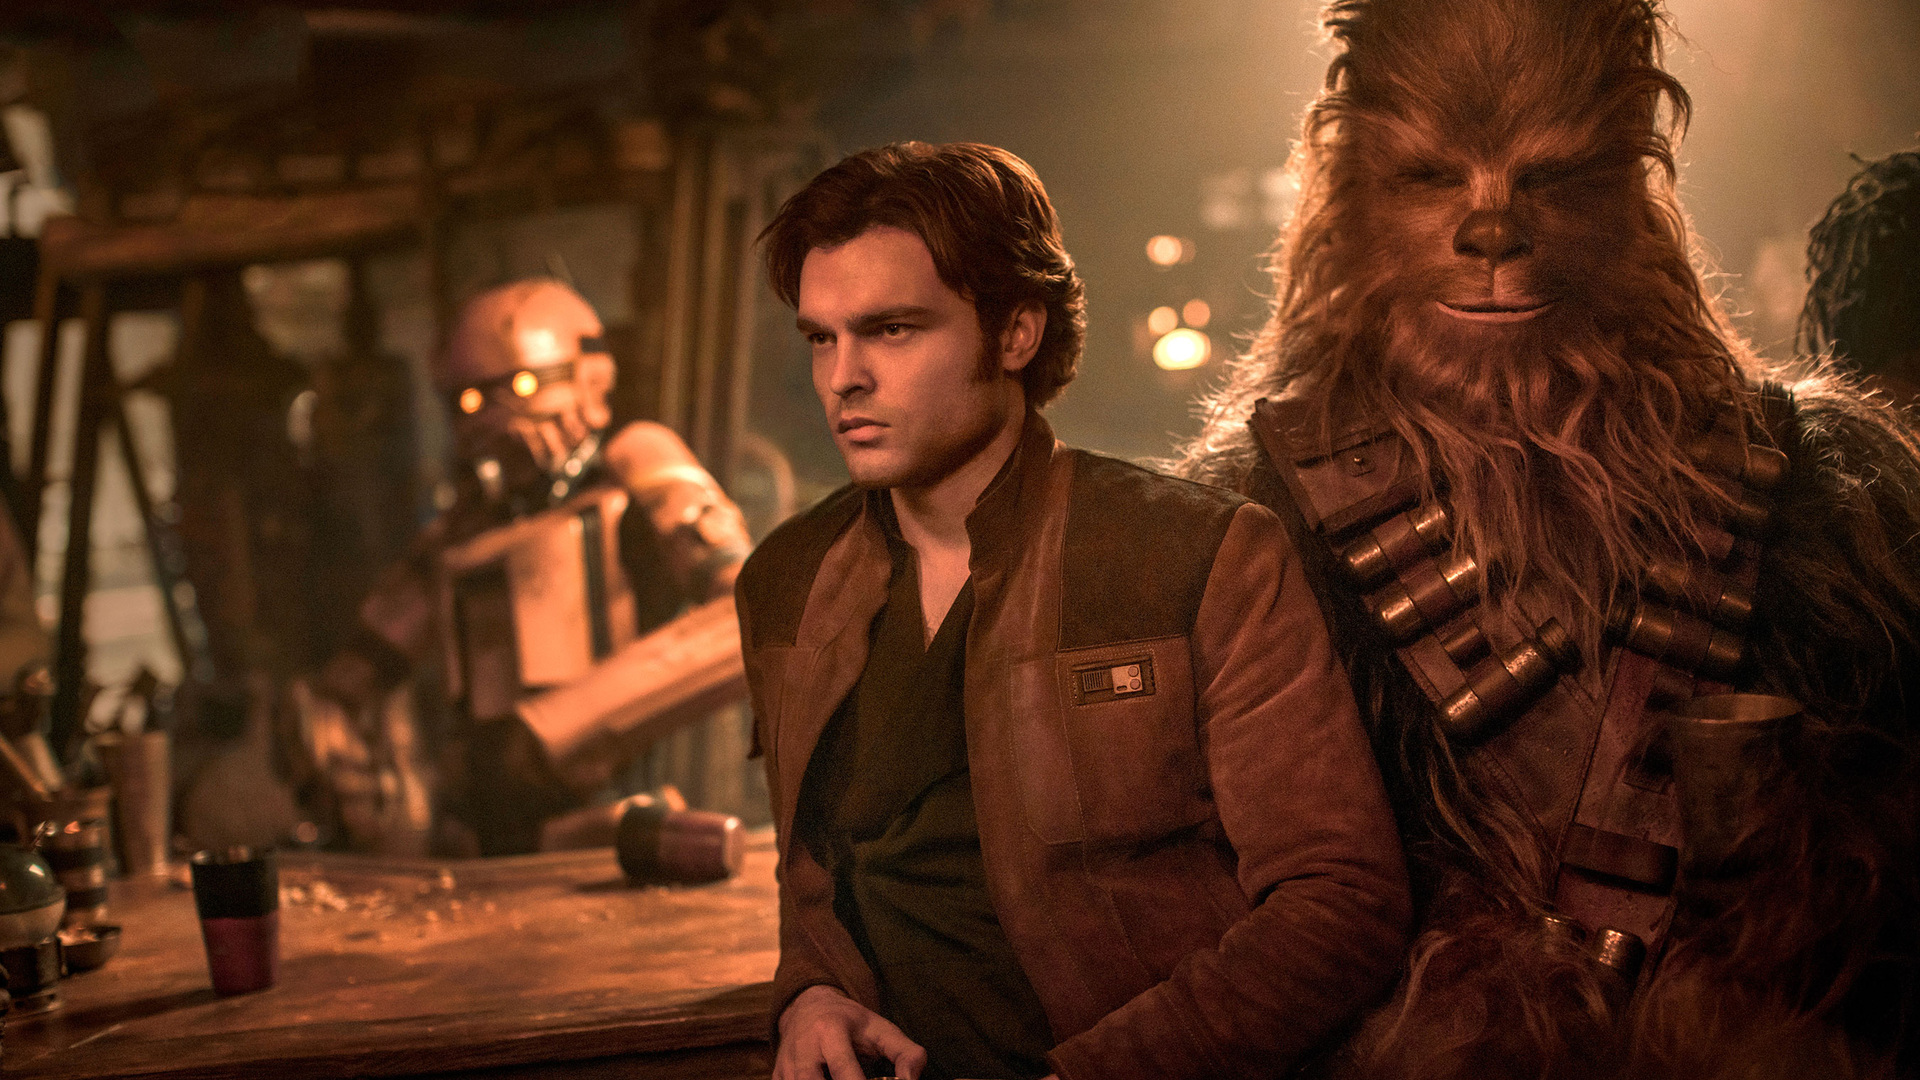 1920X1080 Han Solo And Chewbacca In Solo A Star Wars Story Entertainment Weekly Laptop -5122